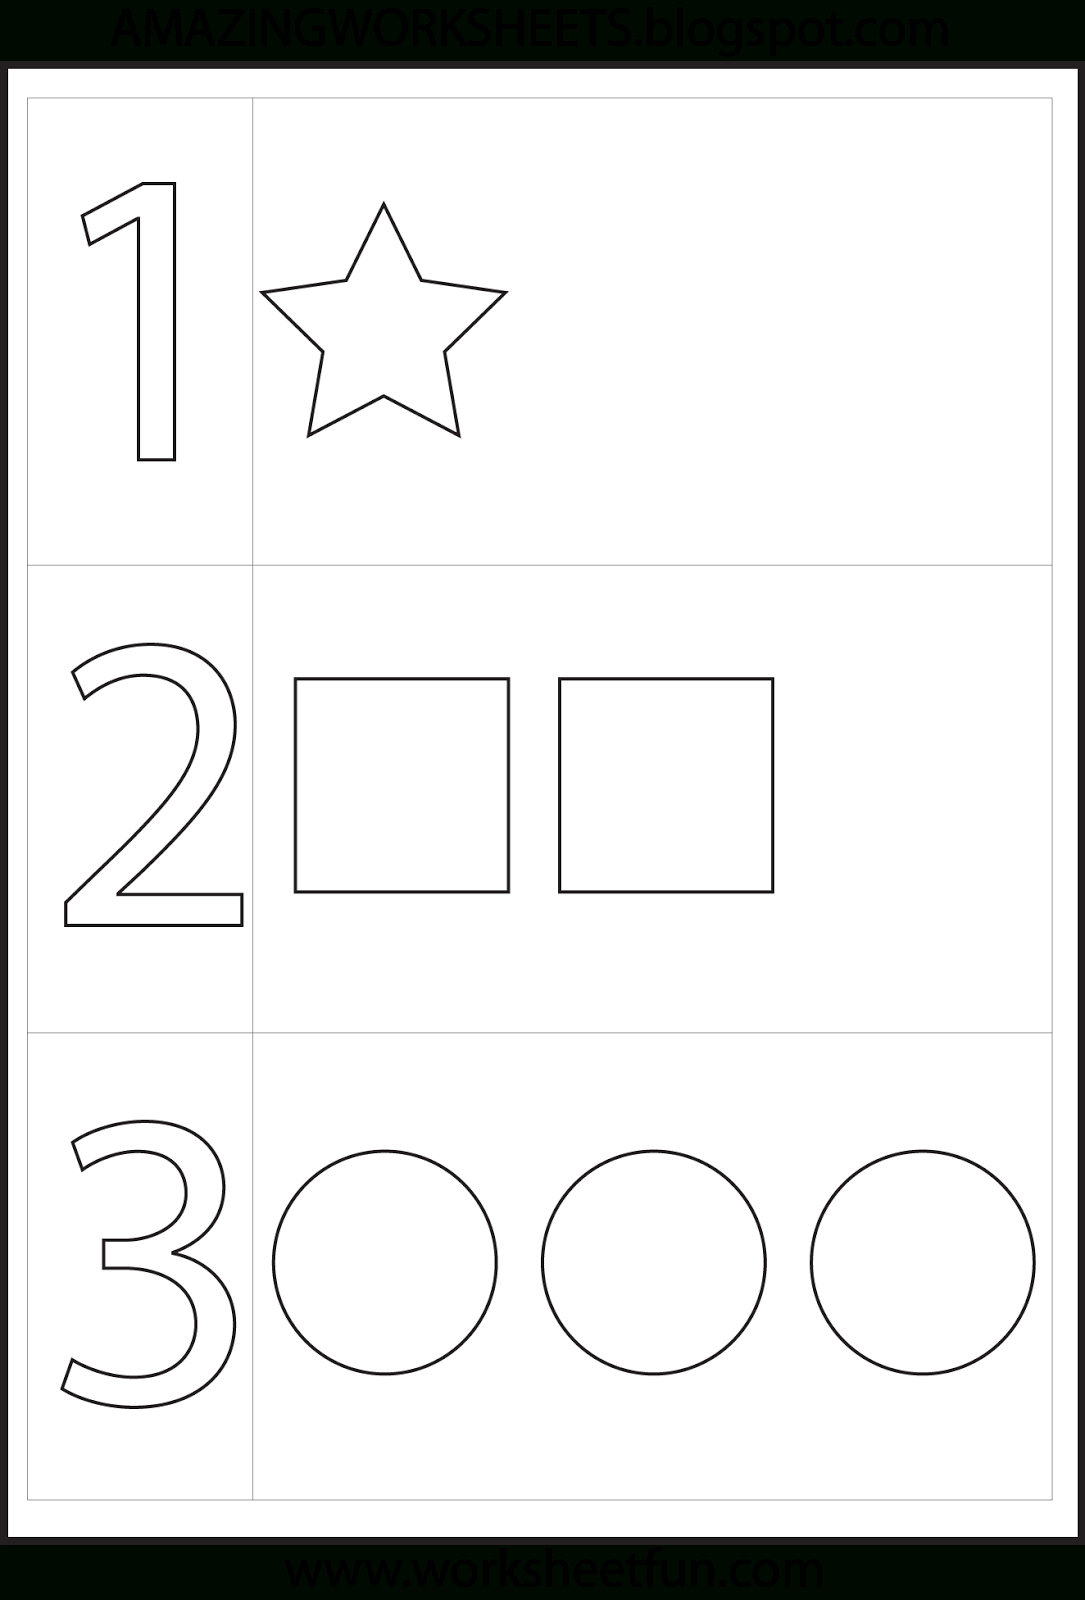 Preschool Number One Worksheet | Number 1 Preschool Worksheets | Number One Worksheet Preschool Printable Activities